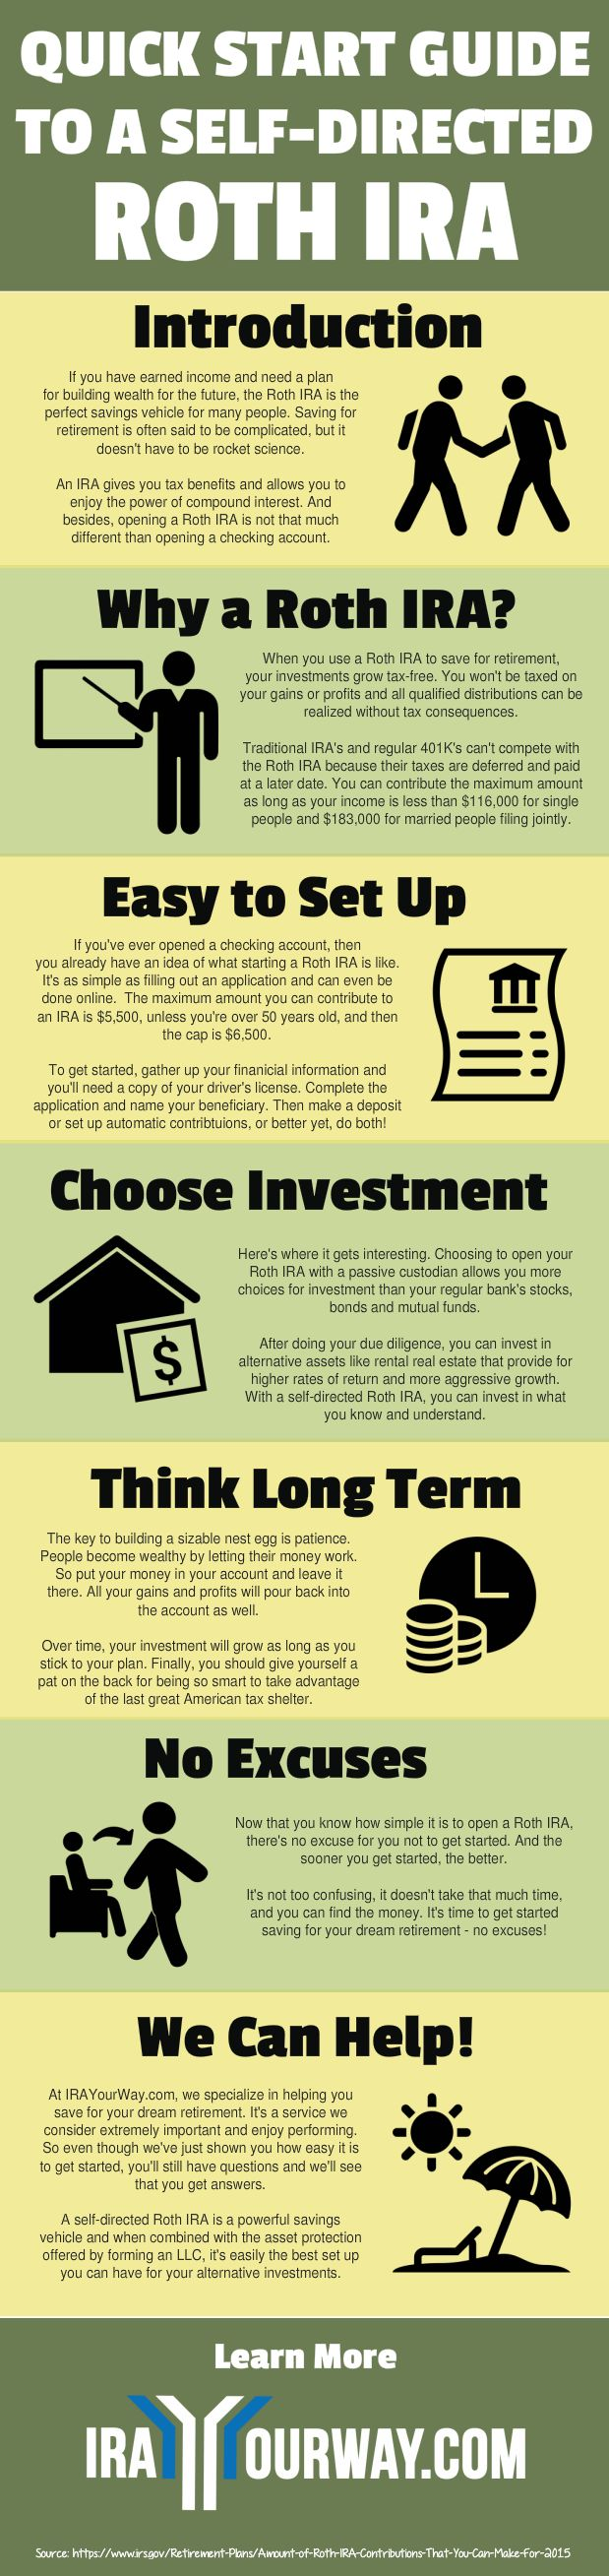 Setting up a self-directed Roth IRA is quick and easy with this infographic from IRAYourWay.com. For more information on the tax benefits, checkbook control and asset protection that you can gain from a self-directed IRA LLC, visit IRAYourWay.com today.